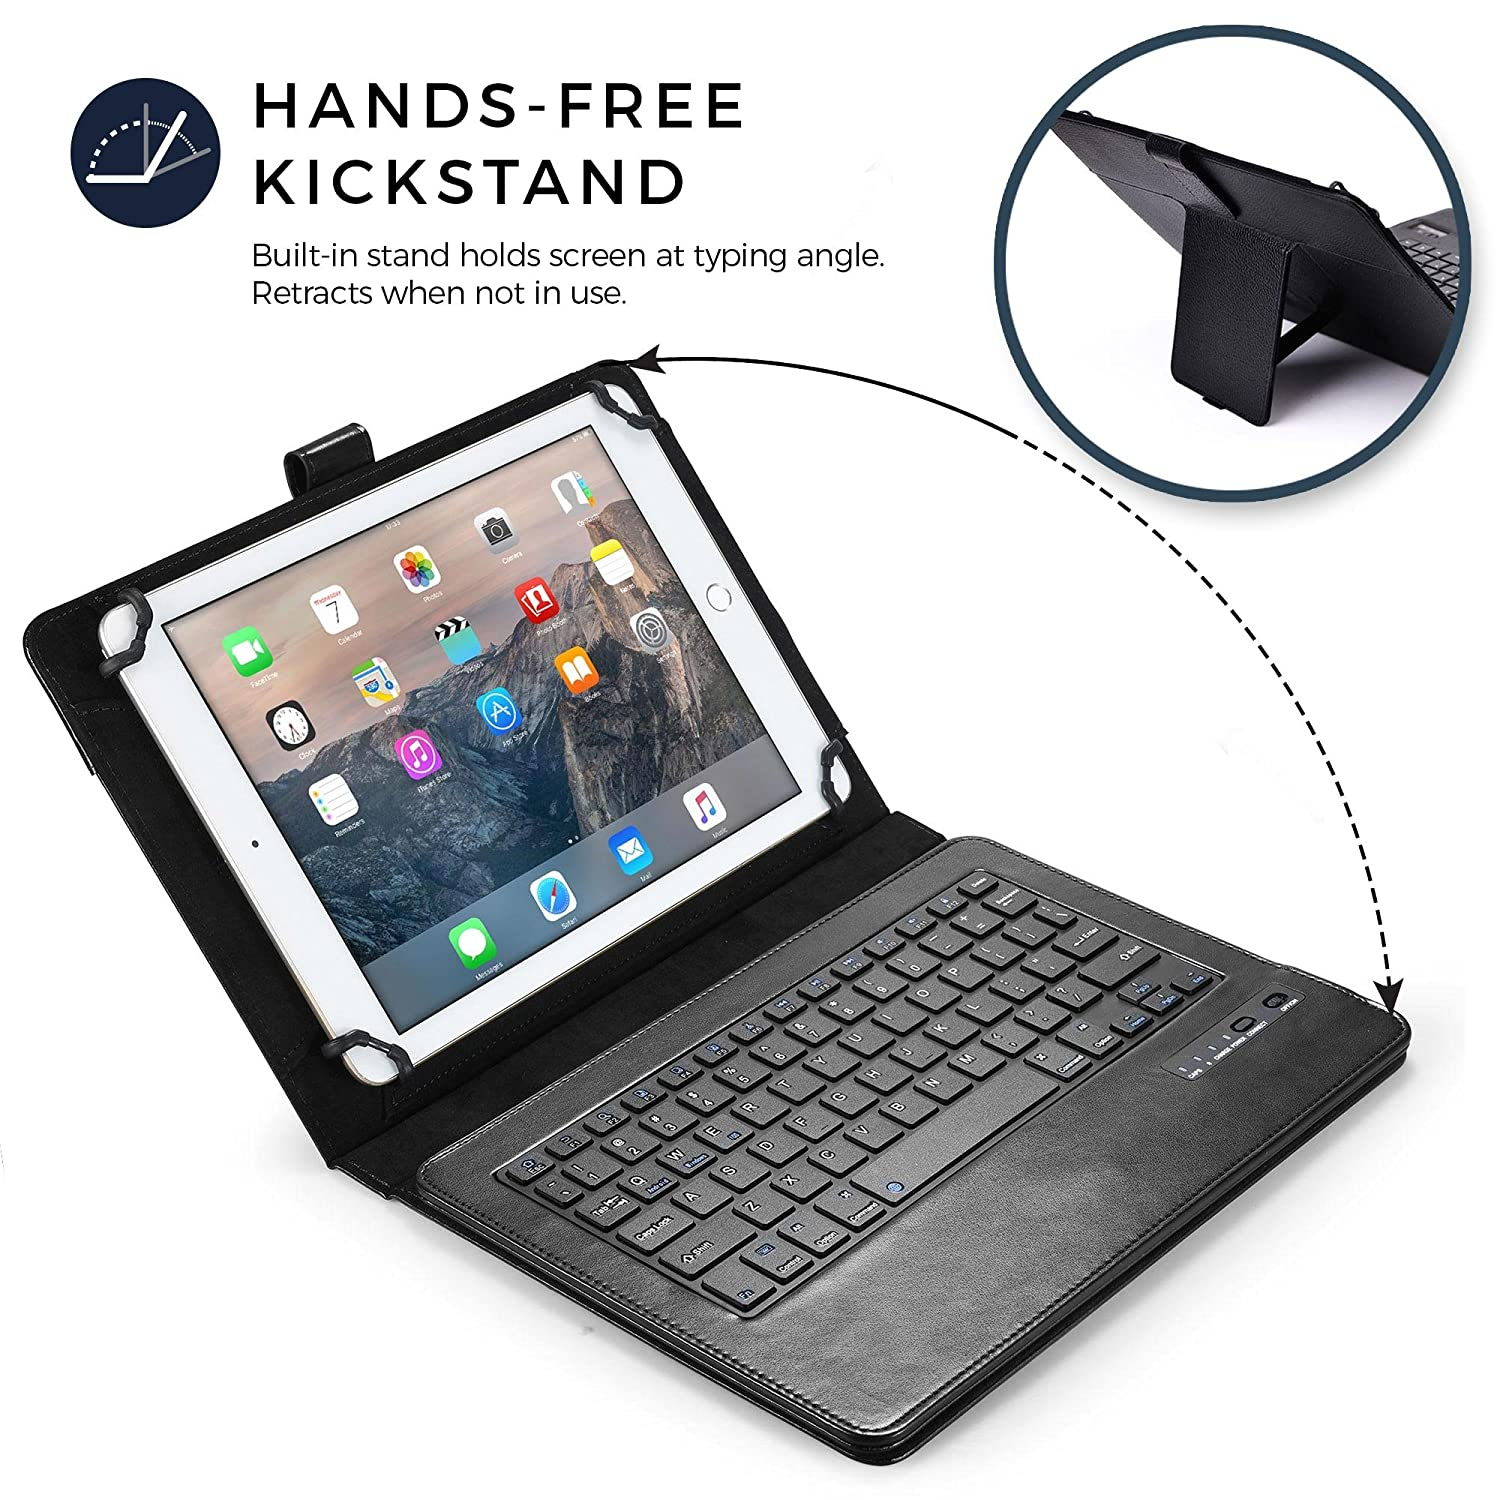 Amazon.com: COOPER INFINITE EXECUTIVE Keyboard case compatible with Samsung Galaxy Note Pro 12.2   2-in-1 Bluetooth Wireless Keyboard & Leather Folio Cover ...